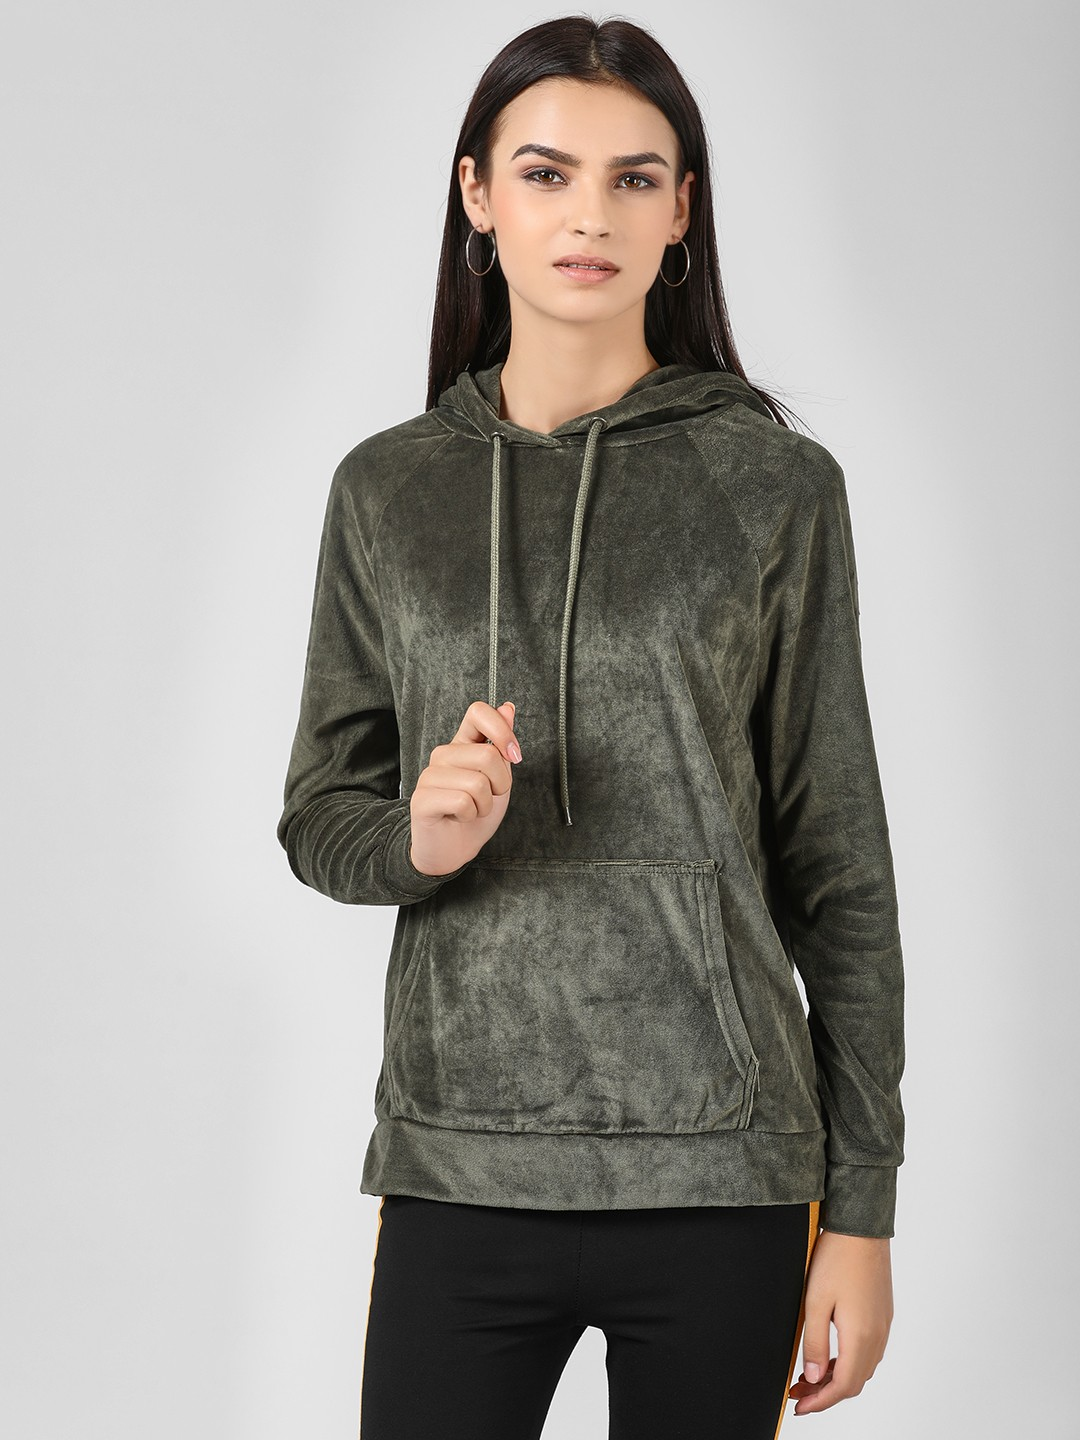 Brave Soul Green Velvet Hooded Sweatshirt 1